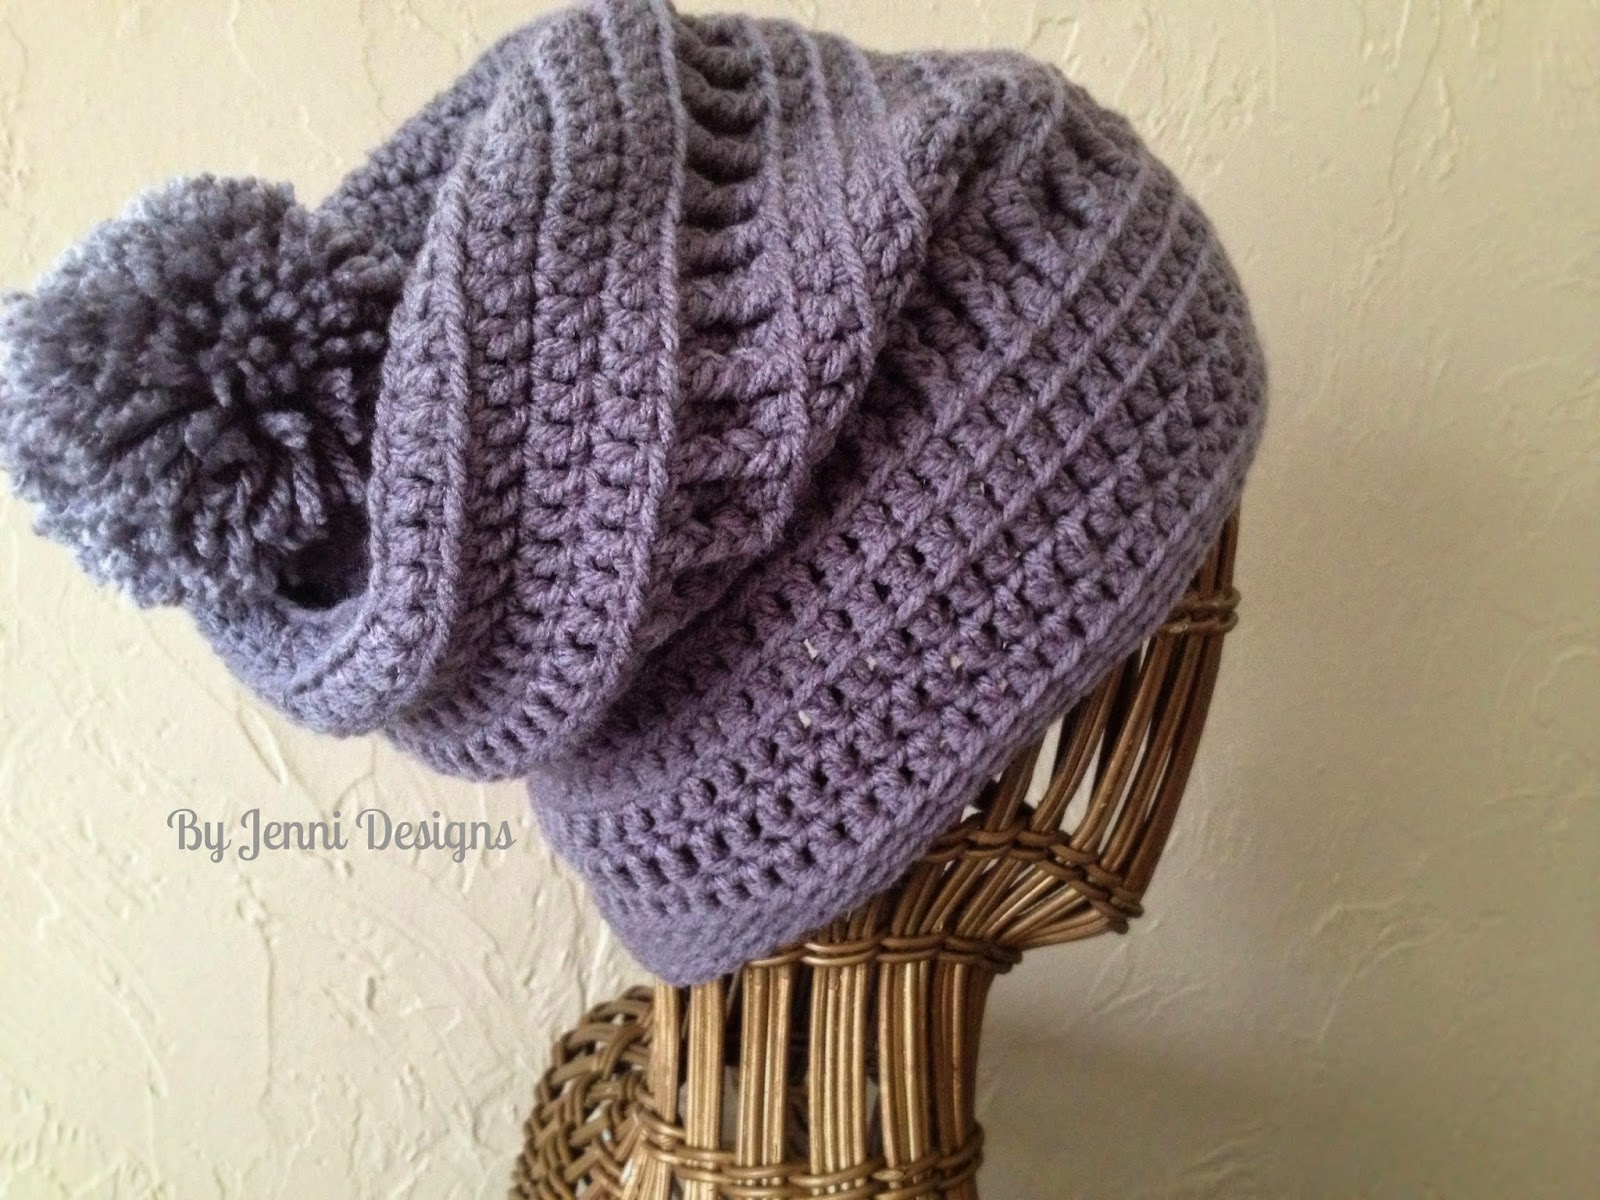 Free Crochet Pattern For Winter Hat : By Jenni Designs: Free Crochet Pattern: Womens Slouchy ...